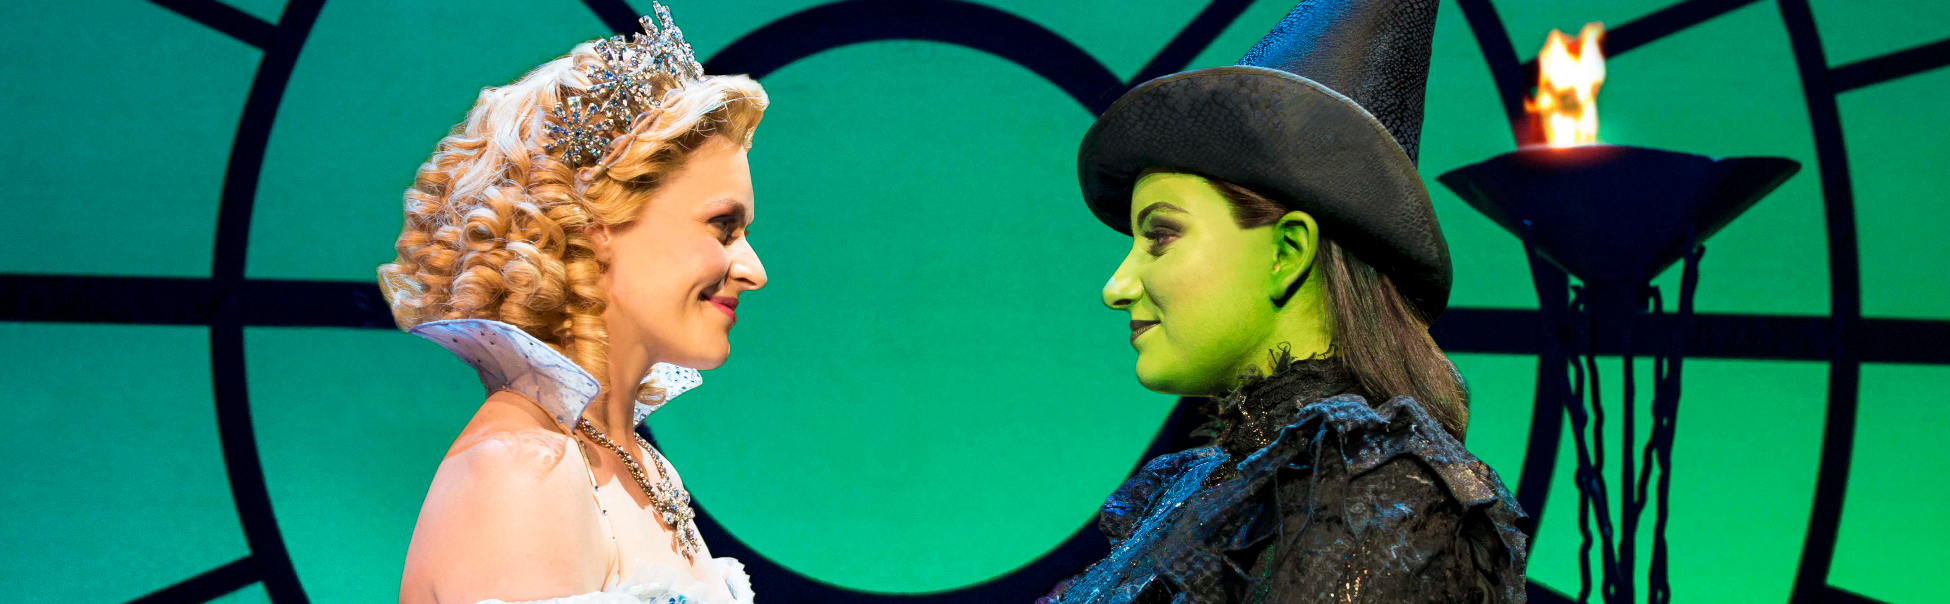 Promo image for Wicked